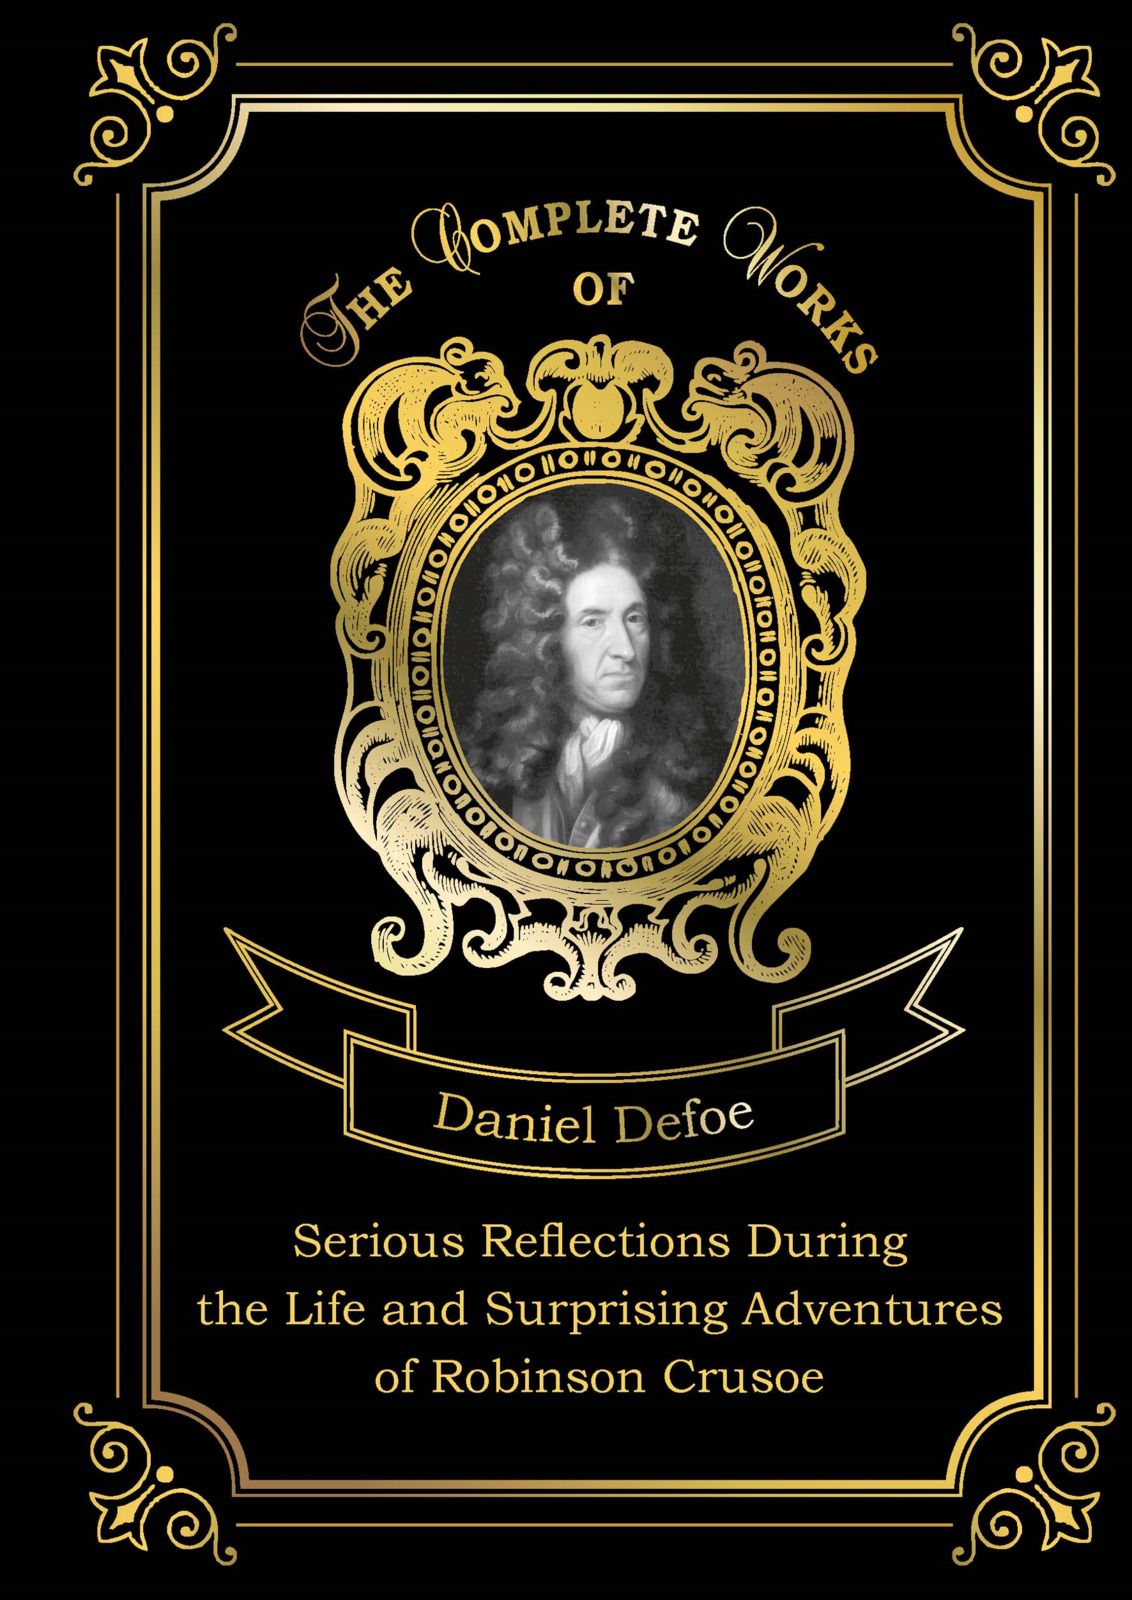 Daniel Defoe Serious Reflections During the Life and Surprising Adventures of Robinson Crusoe the chesapeake book of the dead – tombstones epitaphs histories reflections and oddments of the region